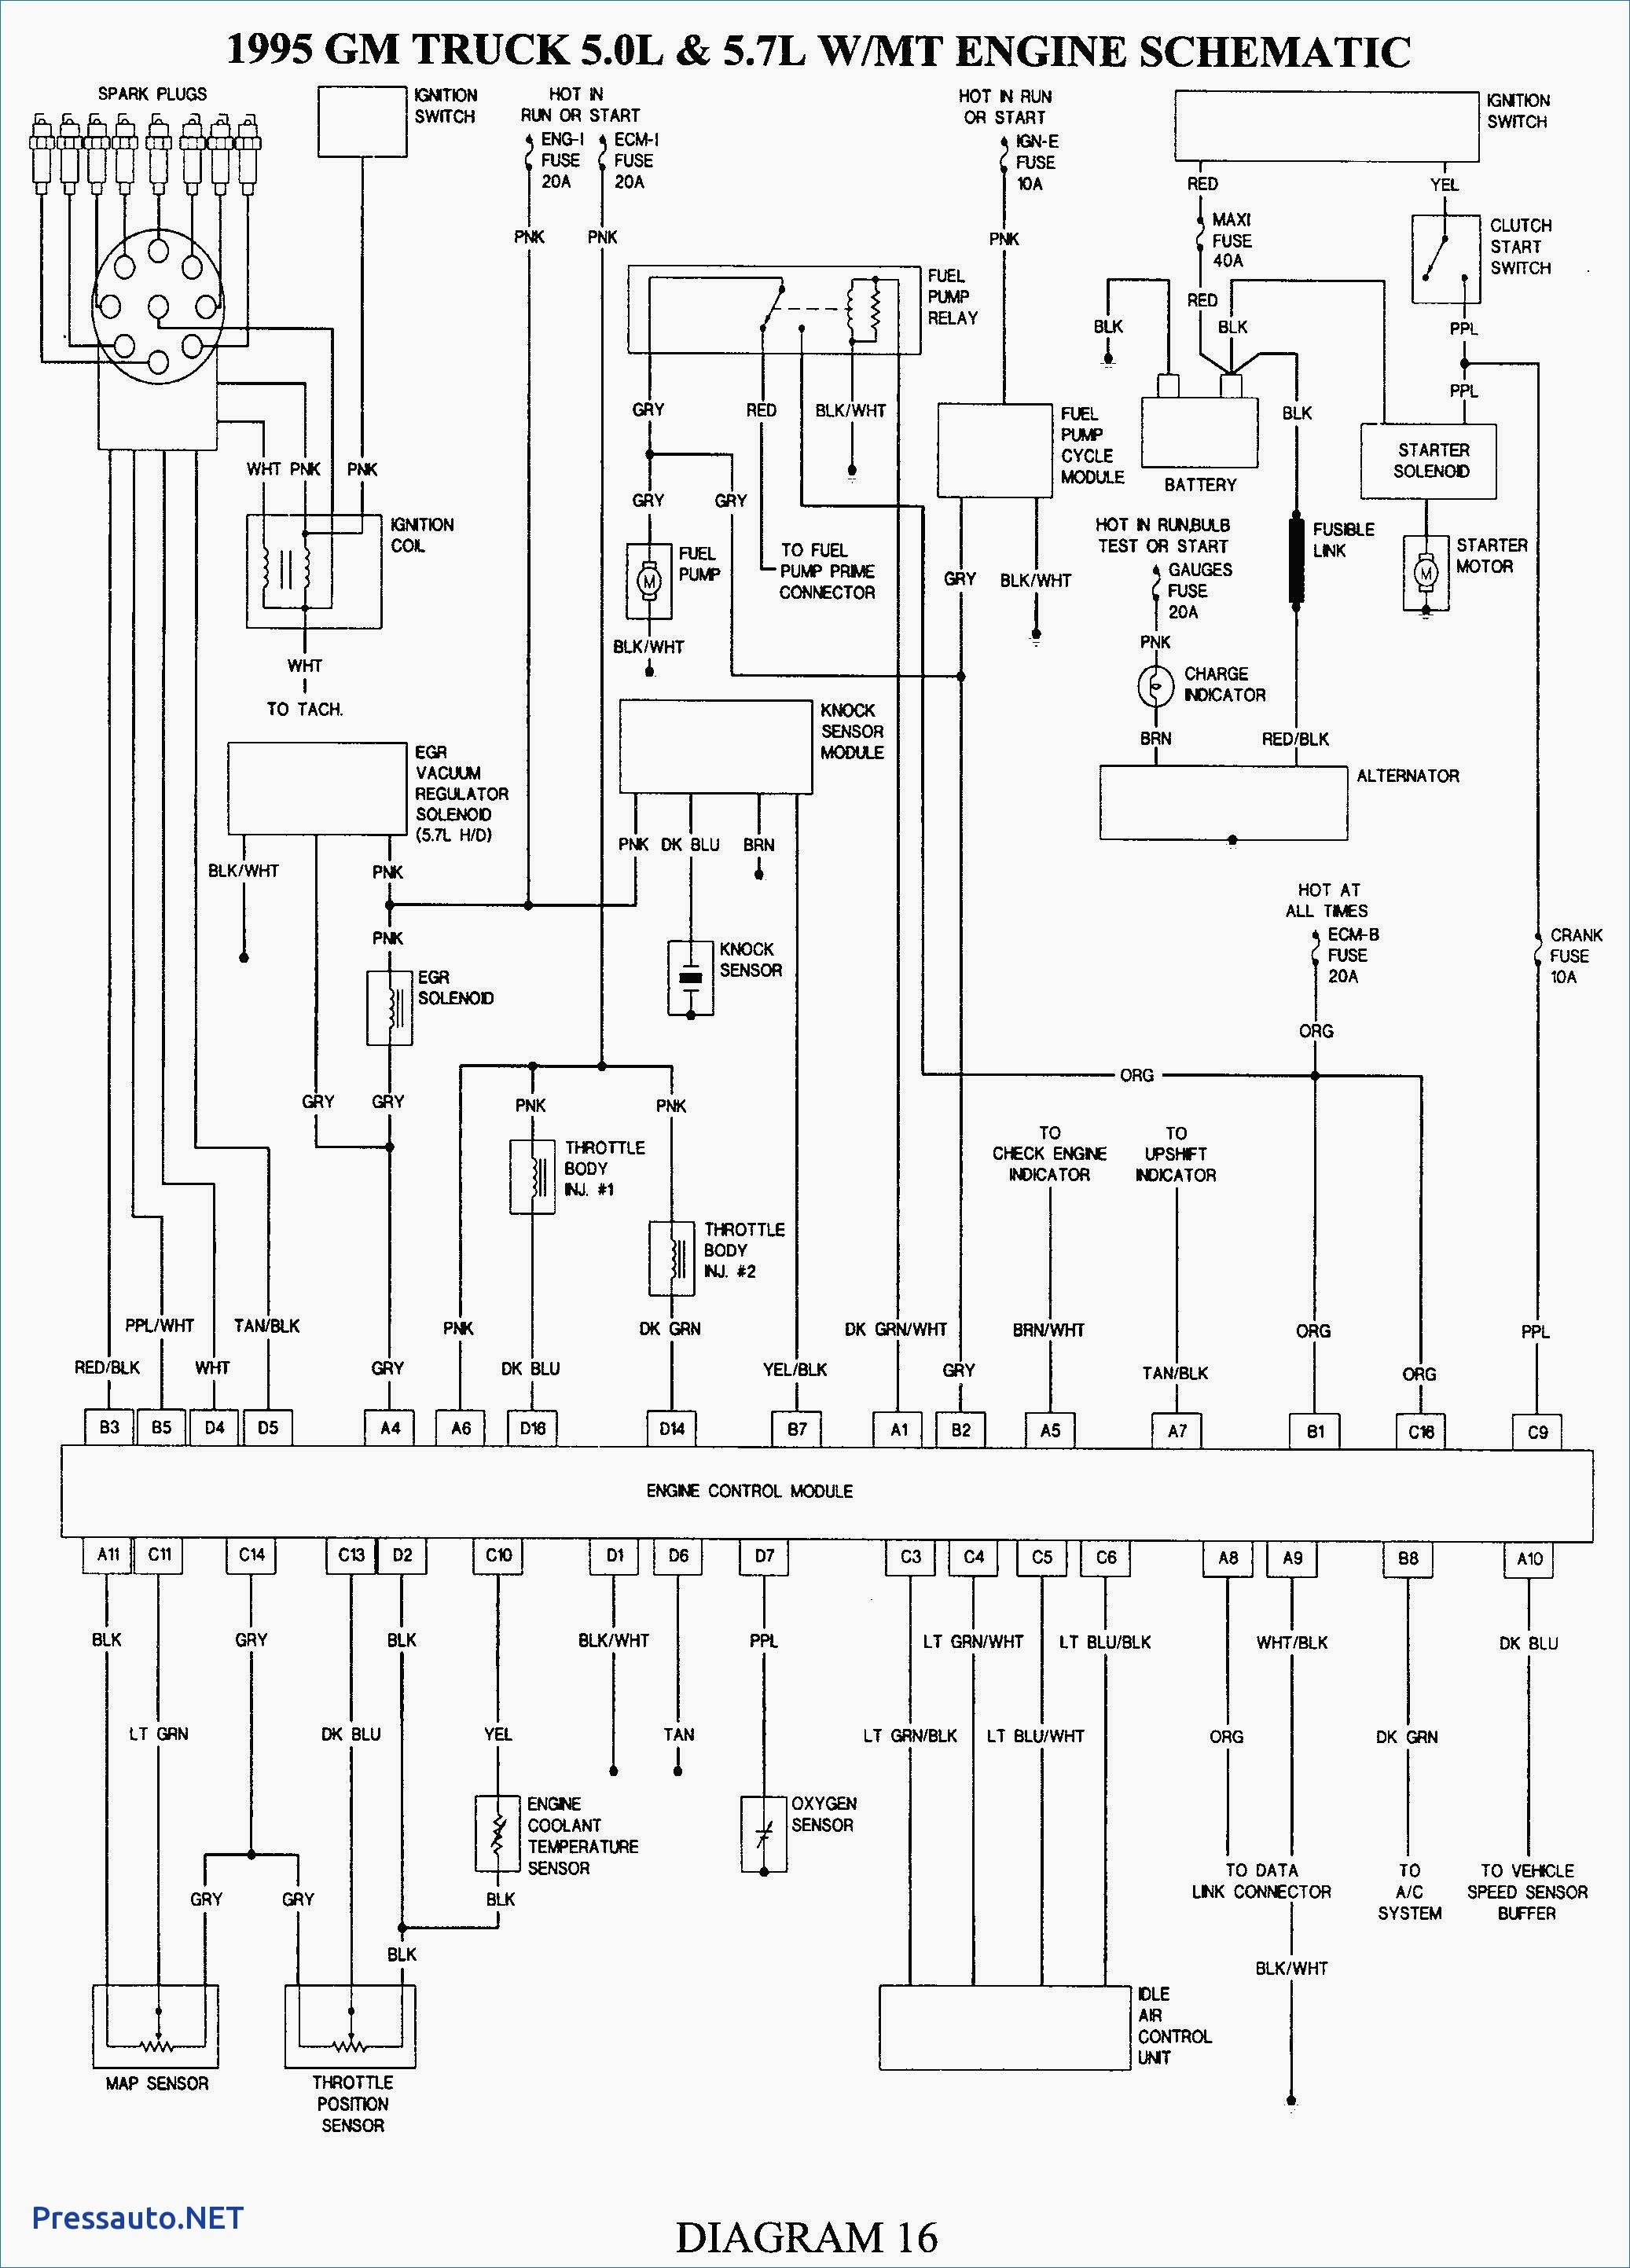 1977 Mack Wiring Diagram - Wiring Diagram Insider Wiring Diagram Schematics Free Download Html on free download cross section, free hallicrafters sx 122 schematics diagrams, free schematic diagram hitachi 55hdt79, free electrical schematics, free schematic diagram h6677 citizen, free electronic circuit diagram,